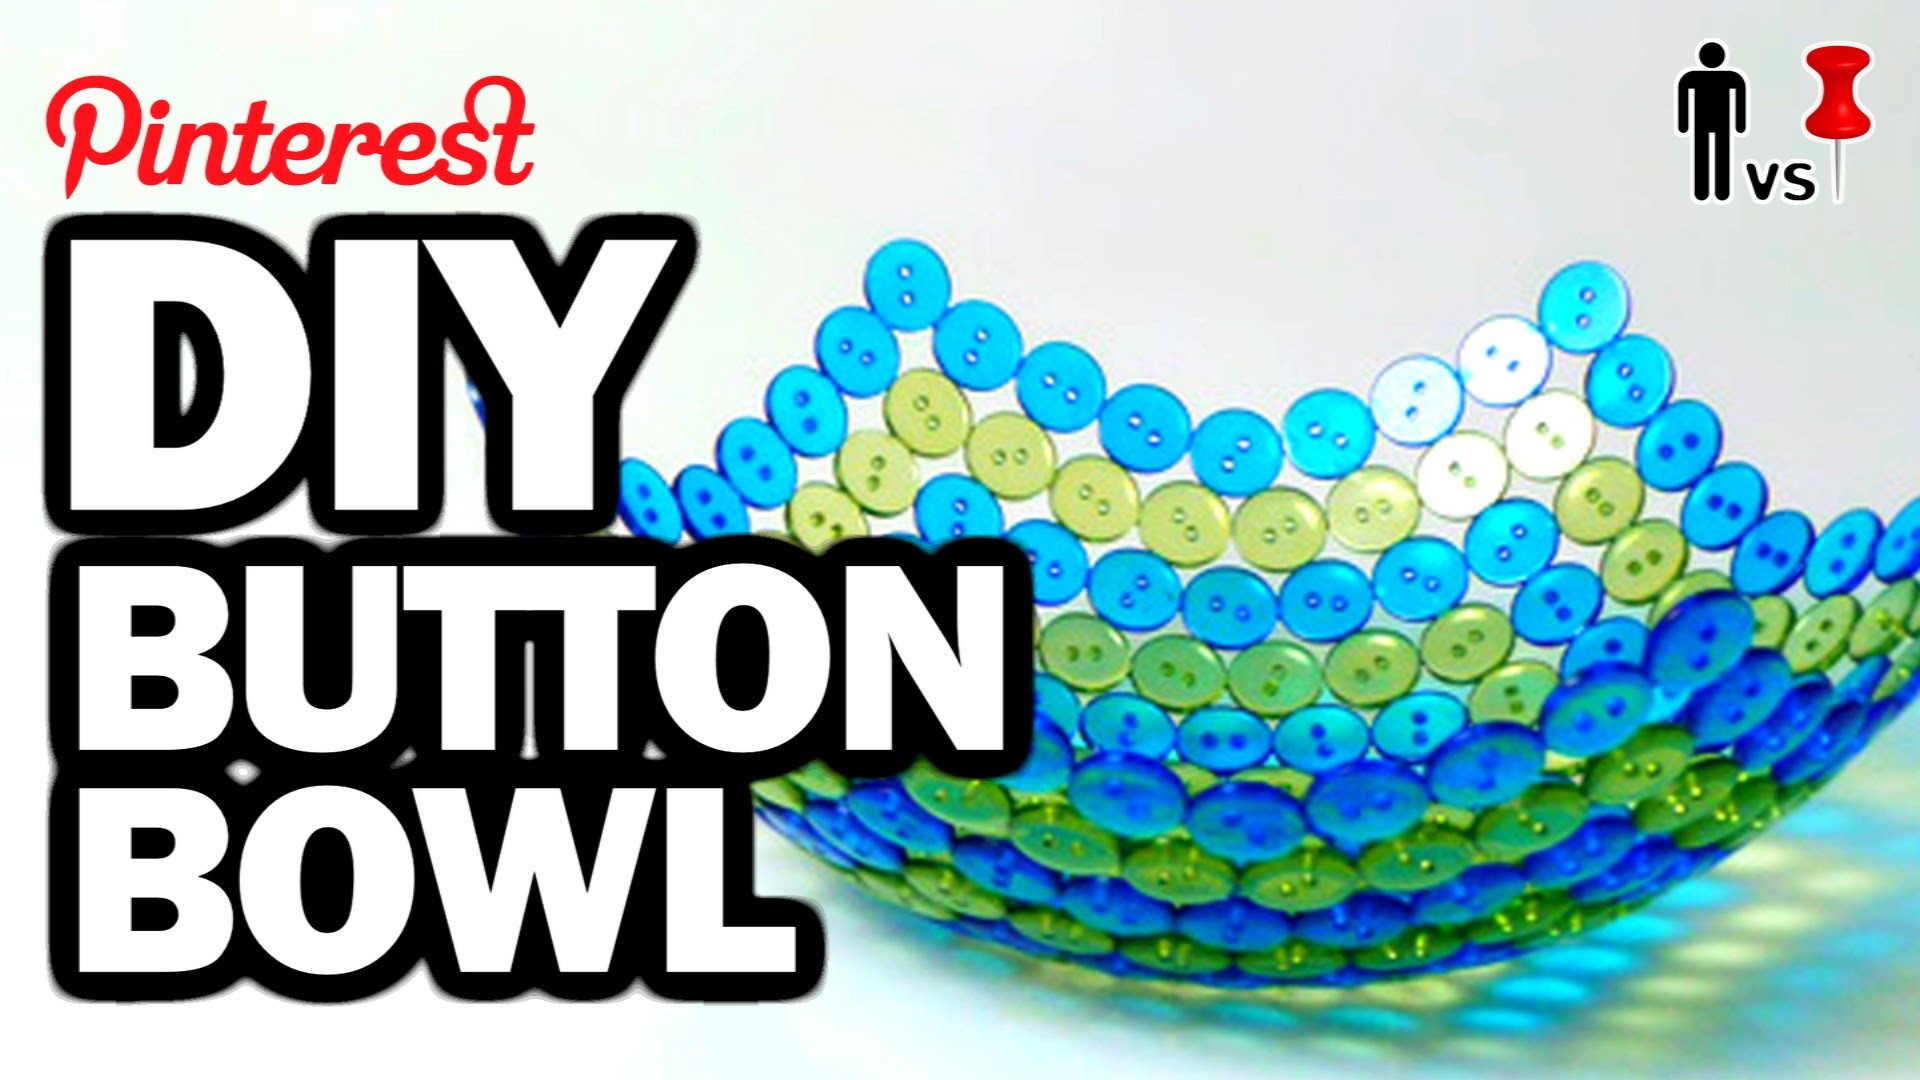 DIY Button Bowl - Man  Vs Pin - Pinterest Test #64